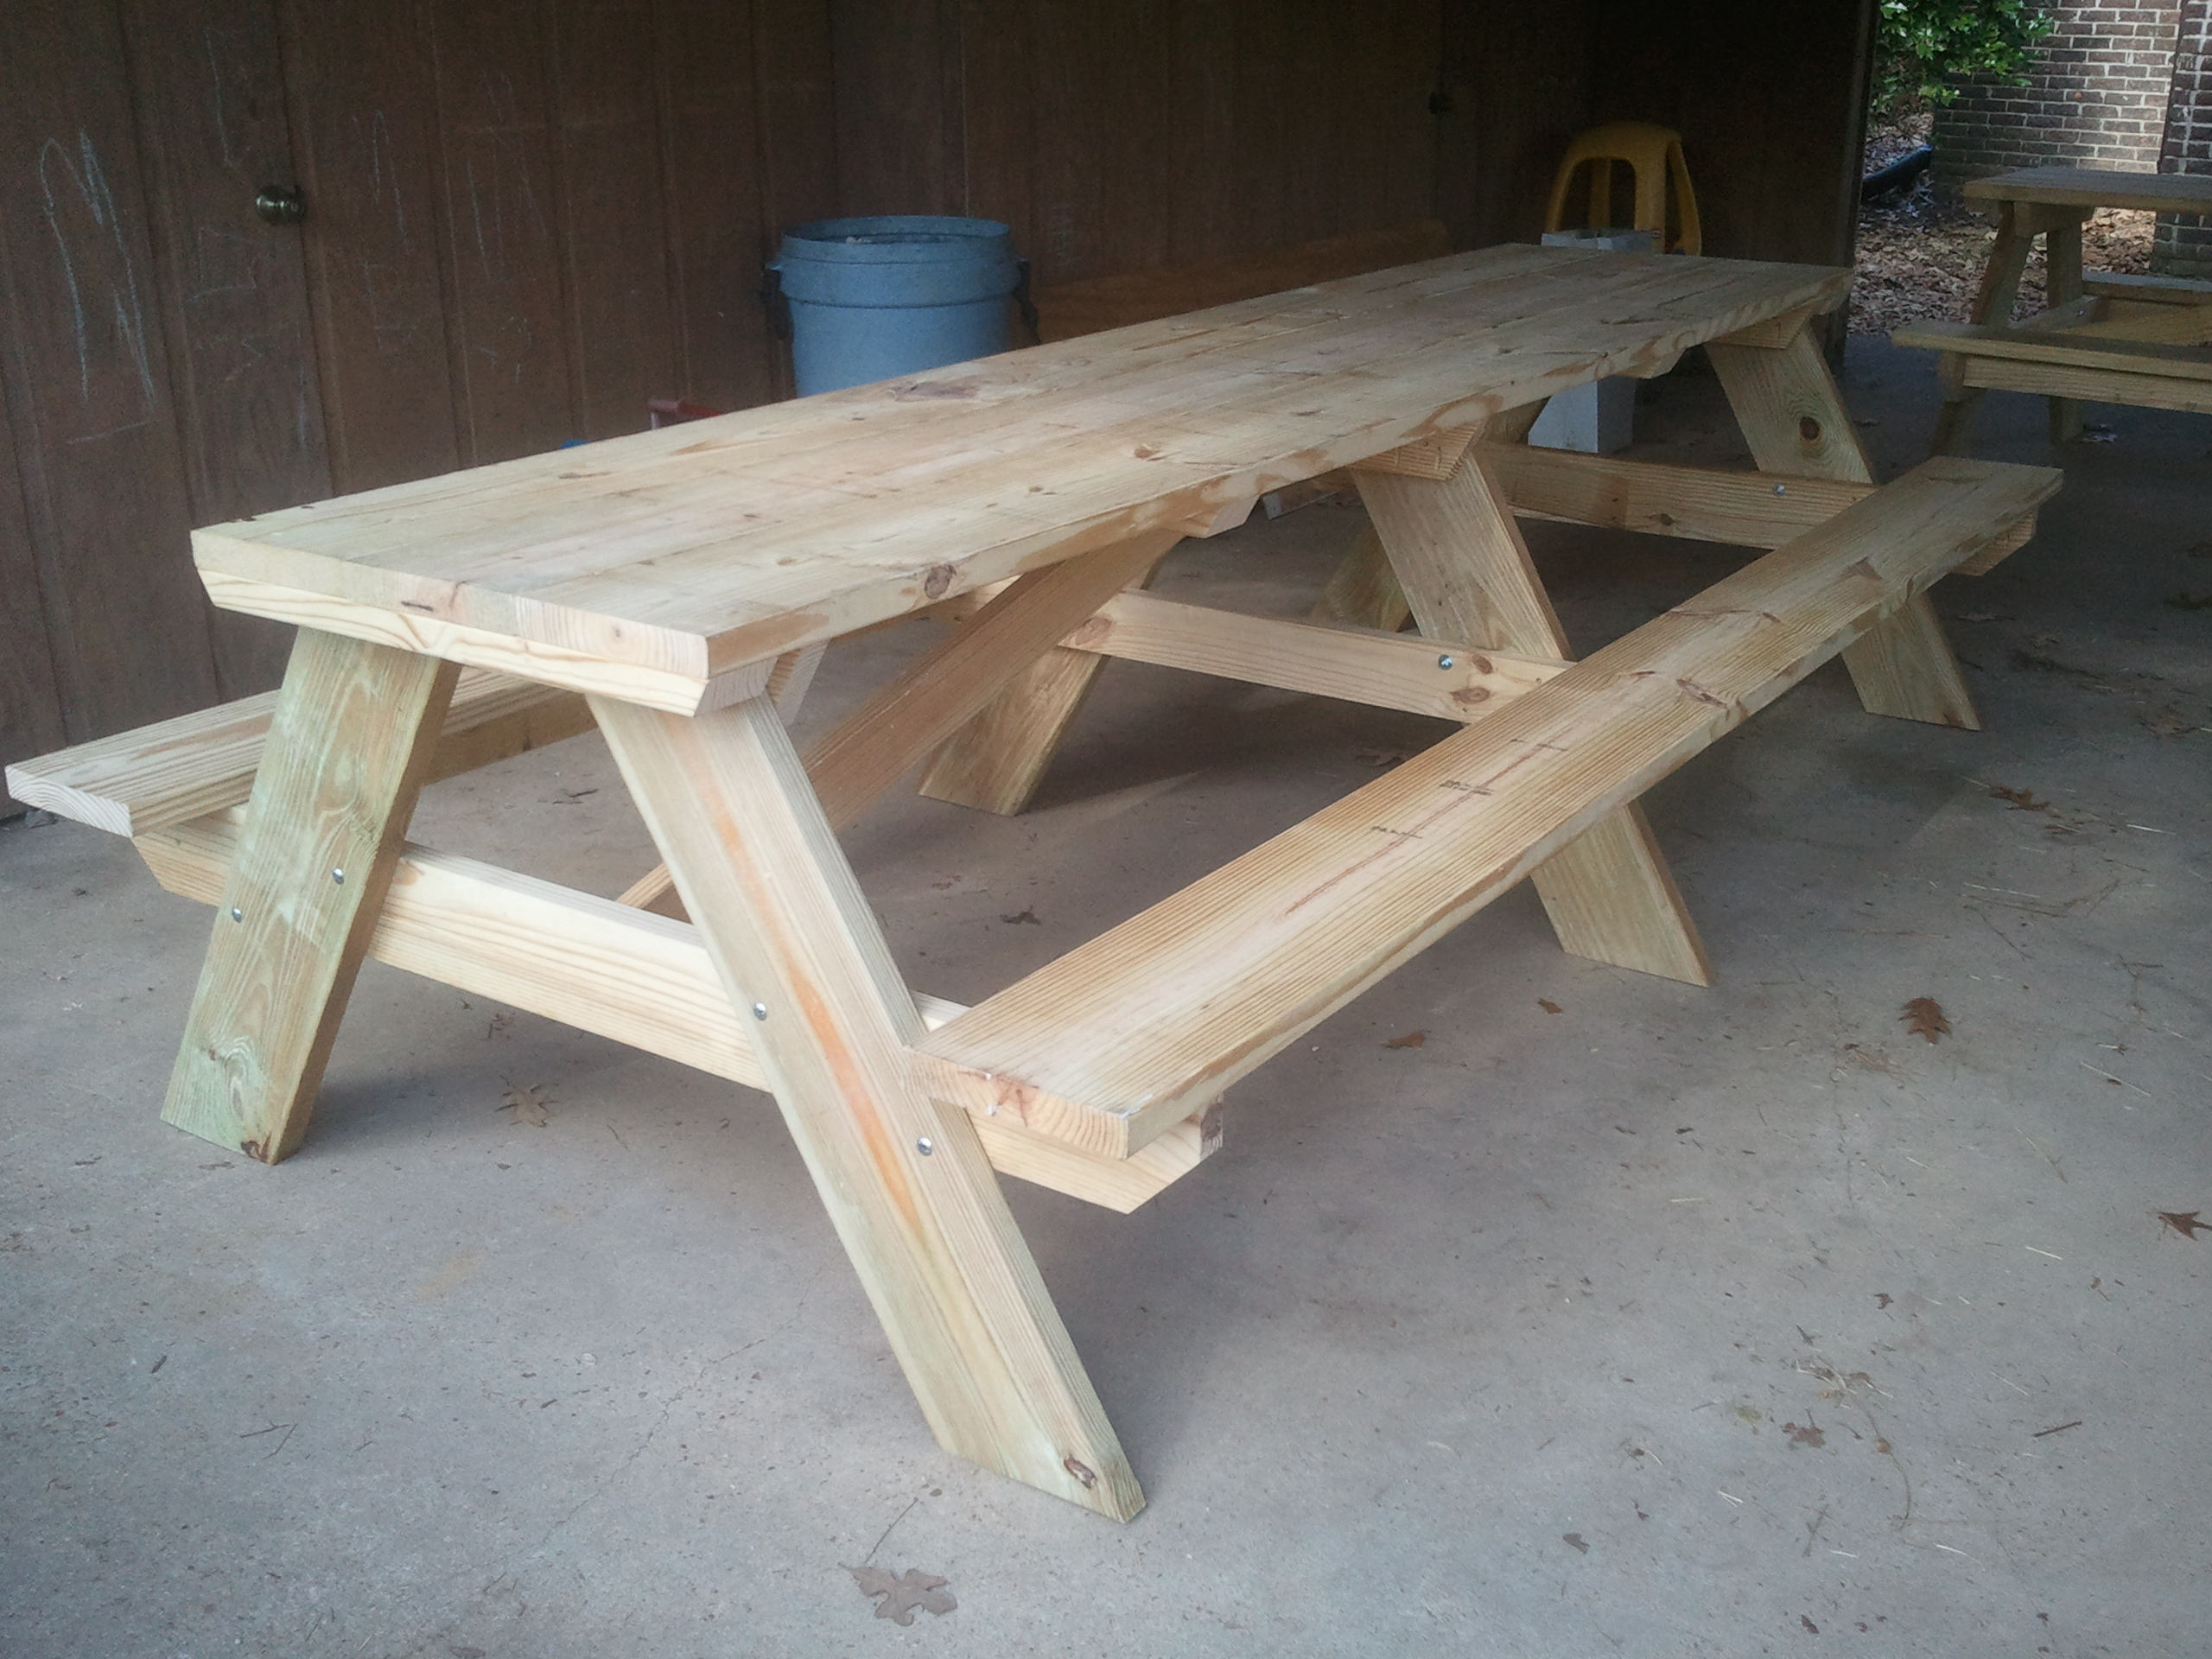 Woodworking picnic table plans free download PDF Free Download